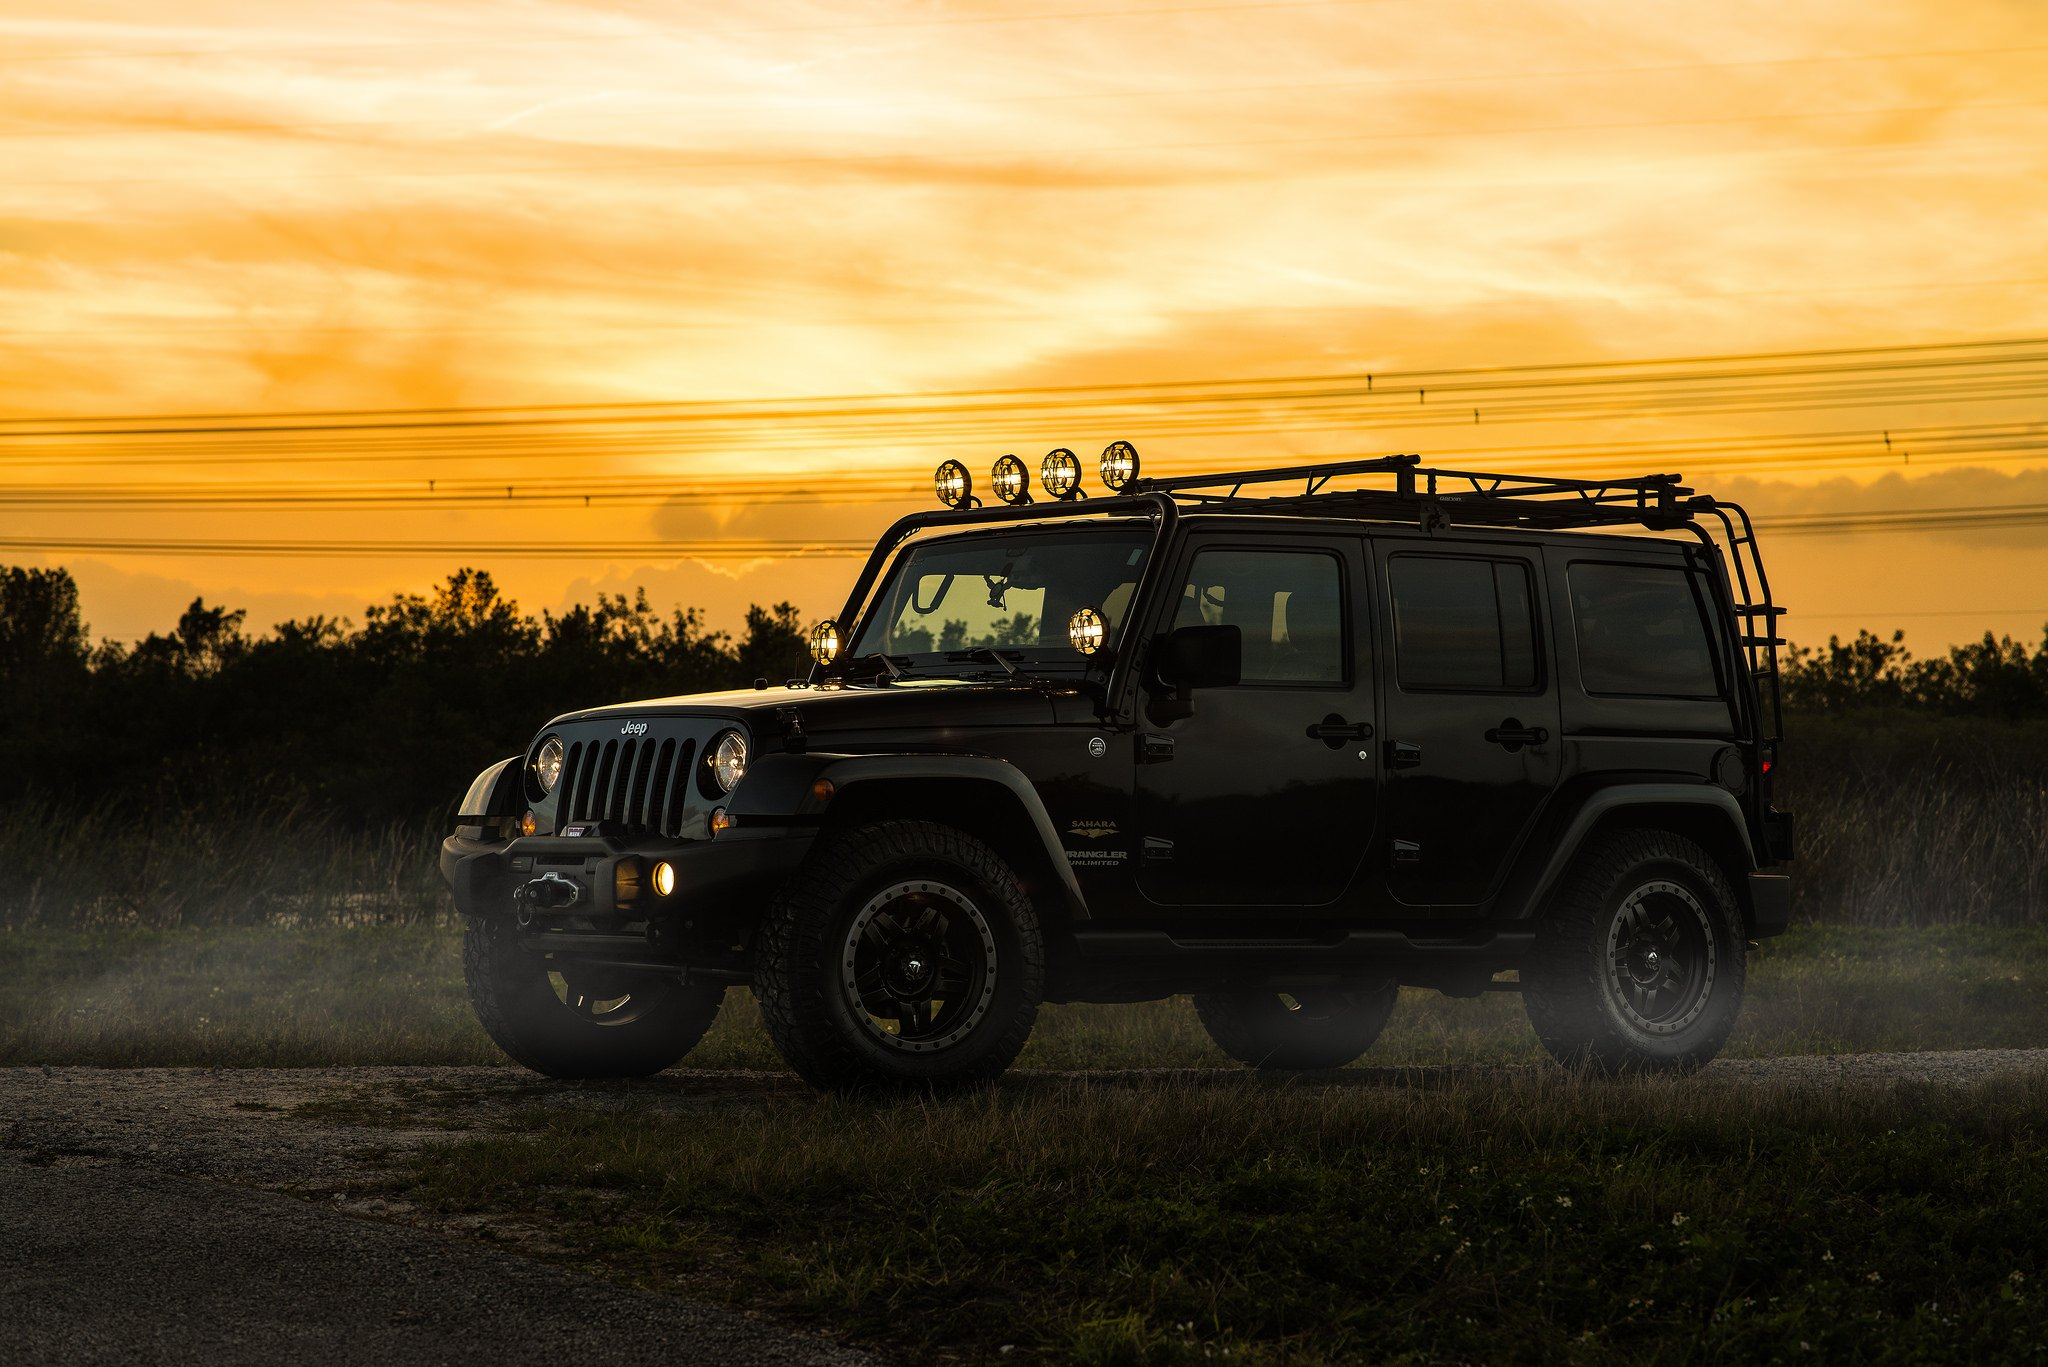 Jku With Expedition Rack And Fuel Off Road Wheels Gallery Jeep Wrangler Kc Hilites Lights On Black Photo By Offroad